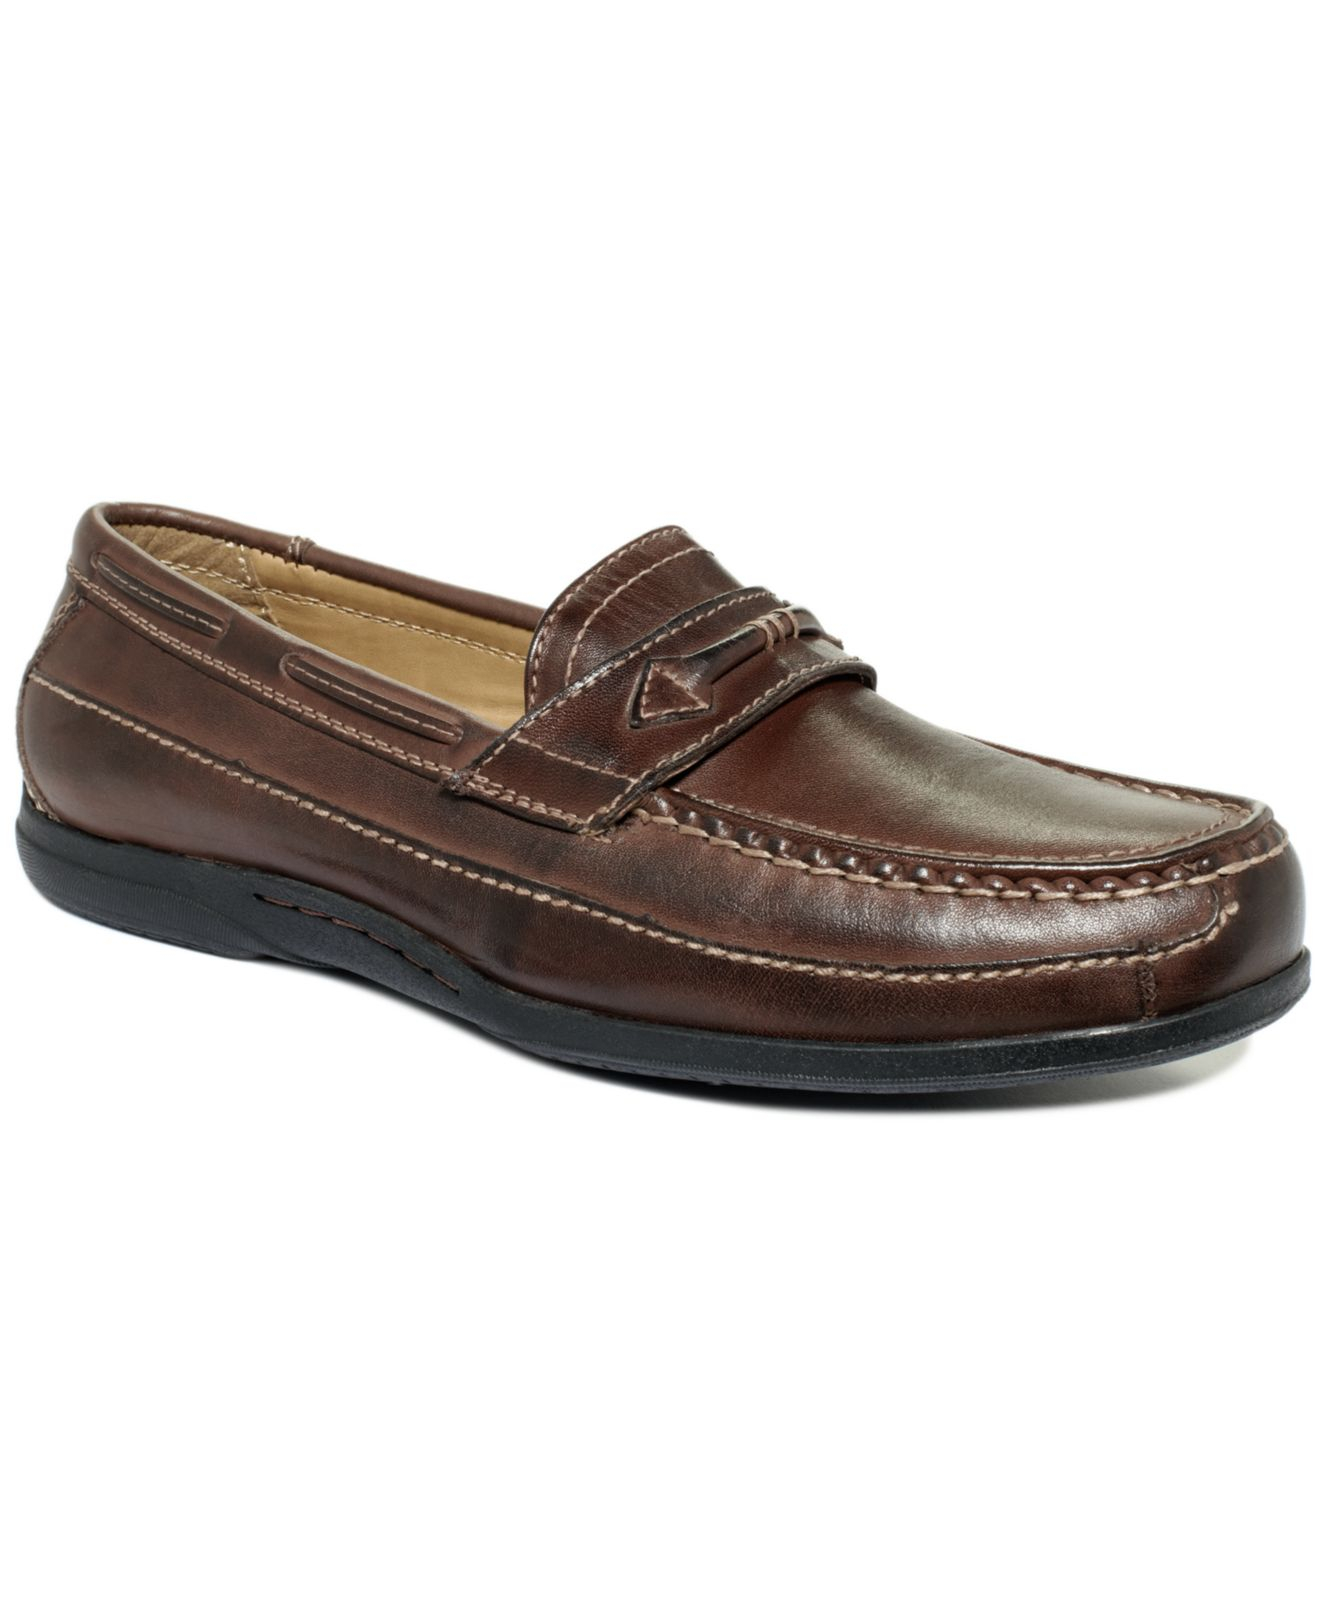 Rubber Rings For Men >> Dockers Shoes, Kingston Driver With Keeper Shoes in Brown for Men | Lyst